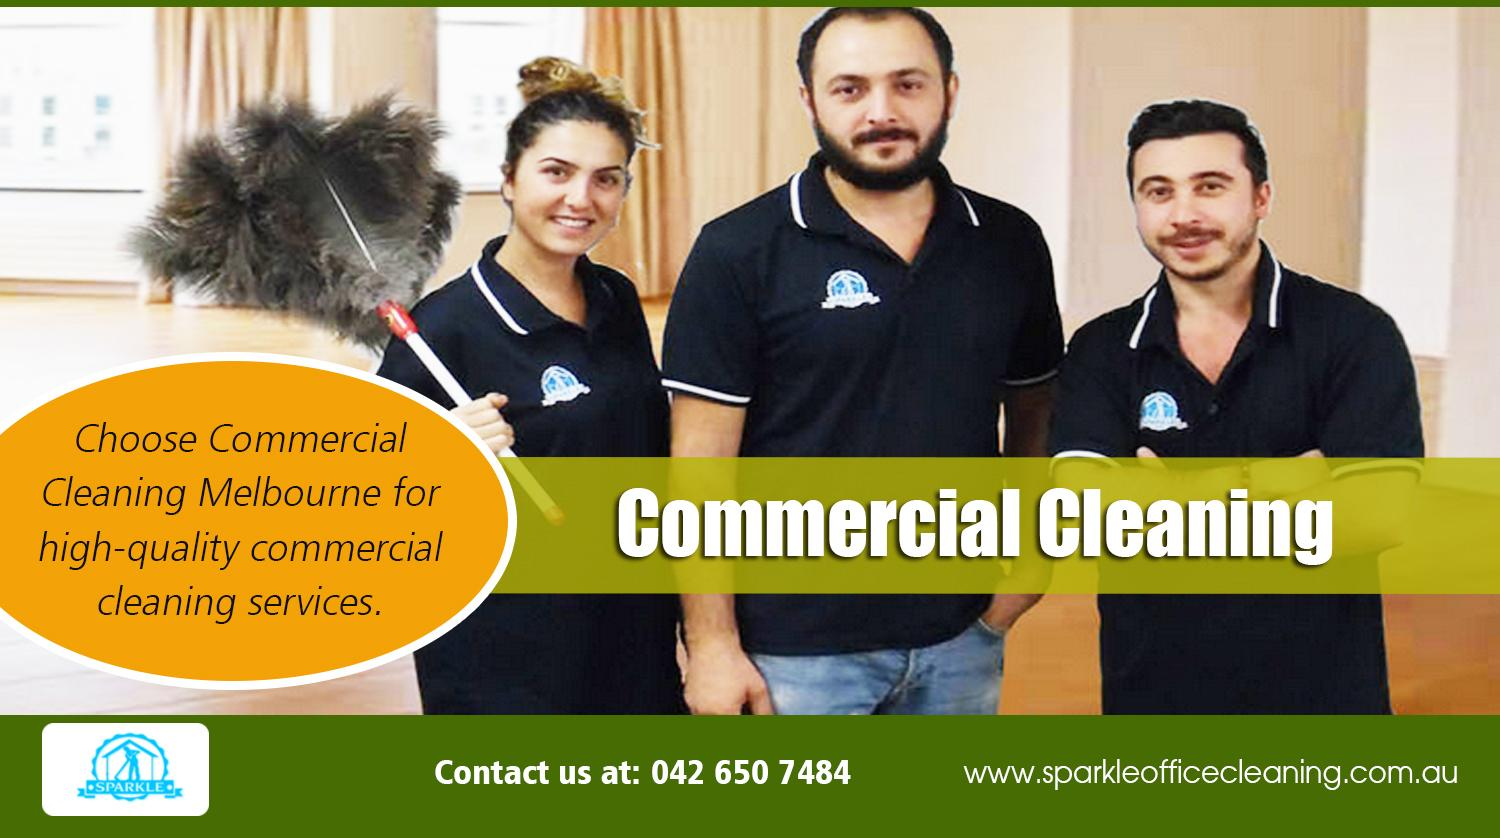 Commercial Cleaning | sparkleofficecleaning.com.au